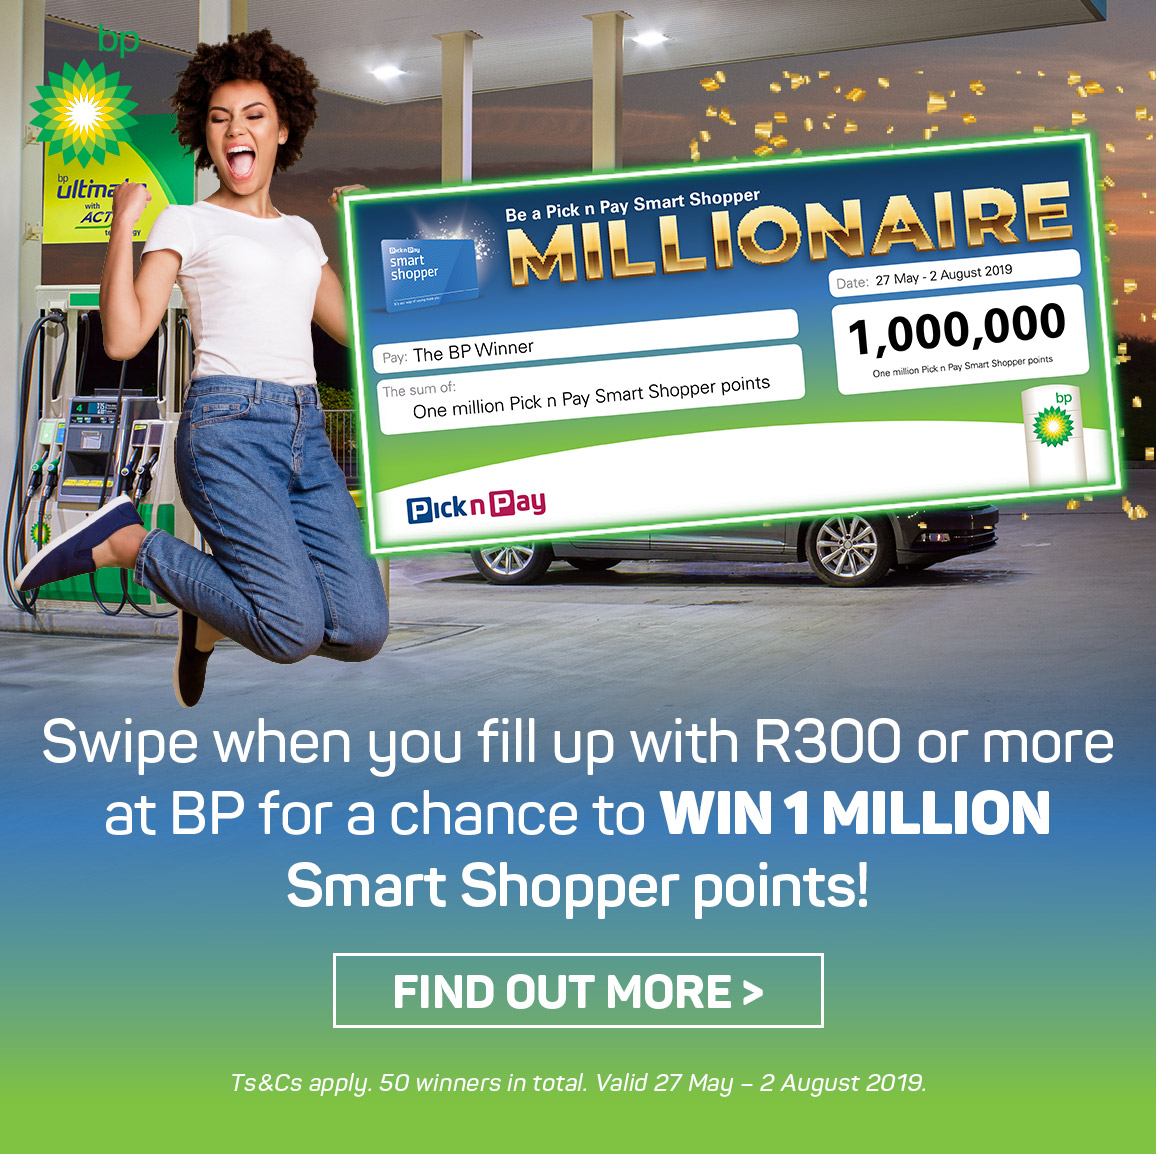 Stand to win 1 Million Smart Shopper Points